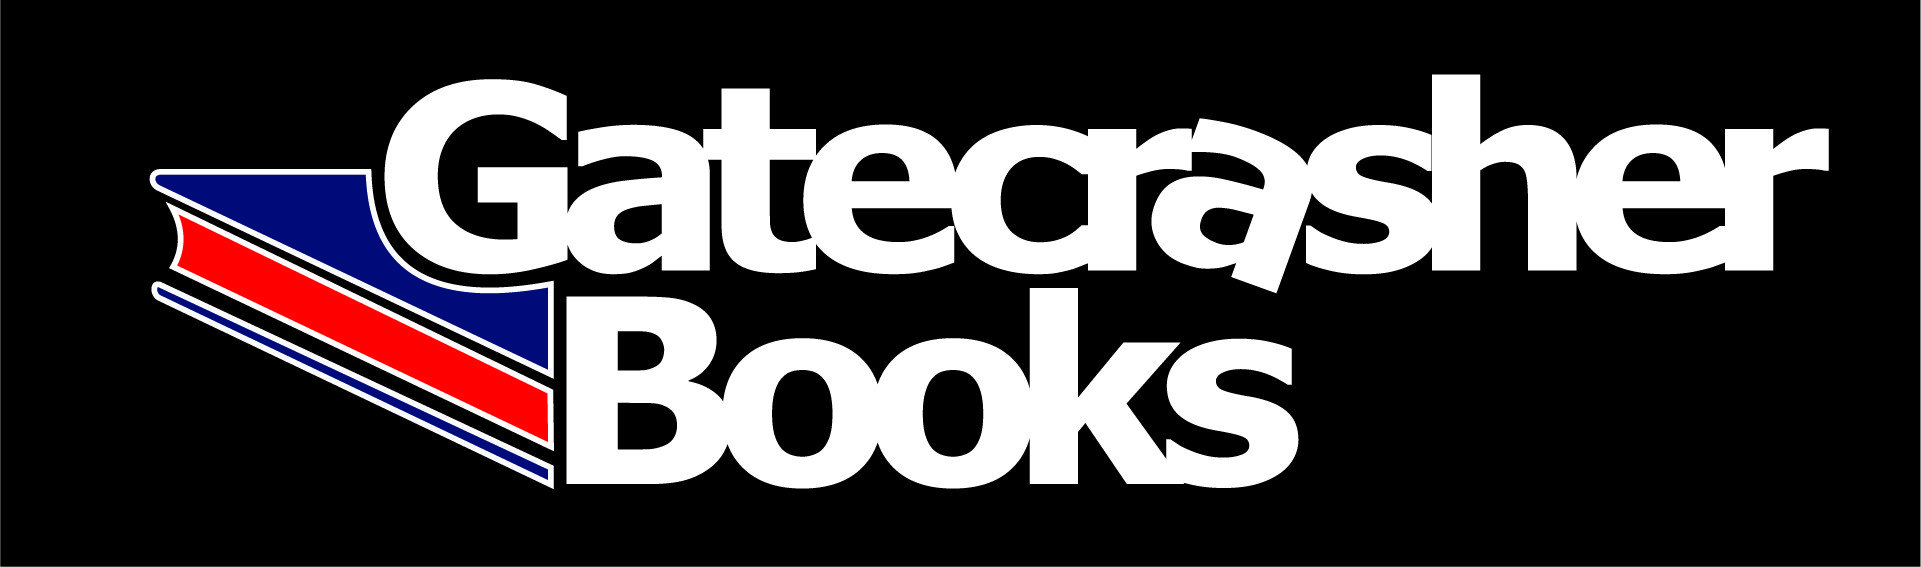 Gatecrasher Books logo